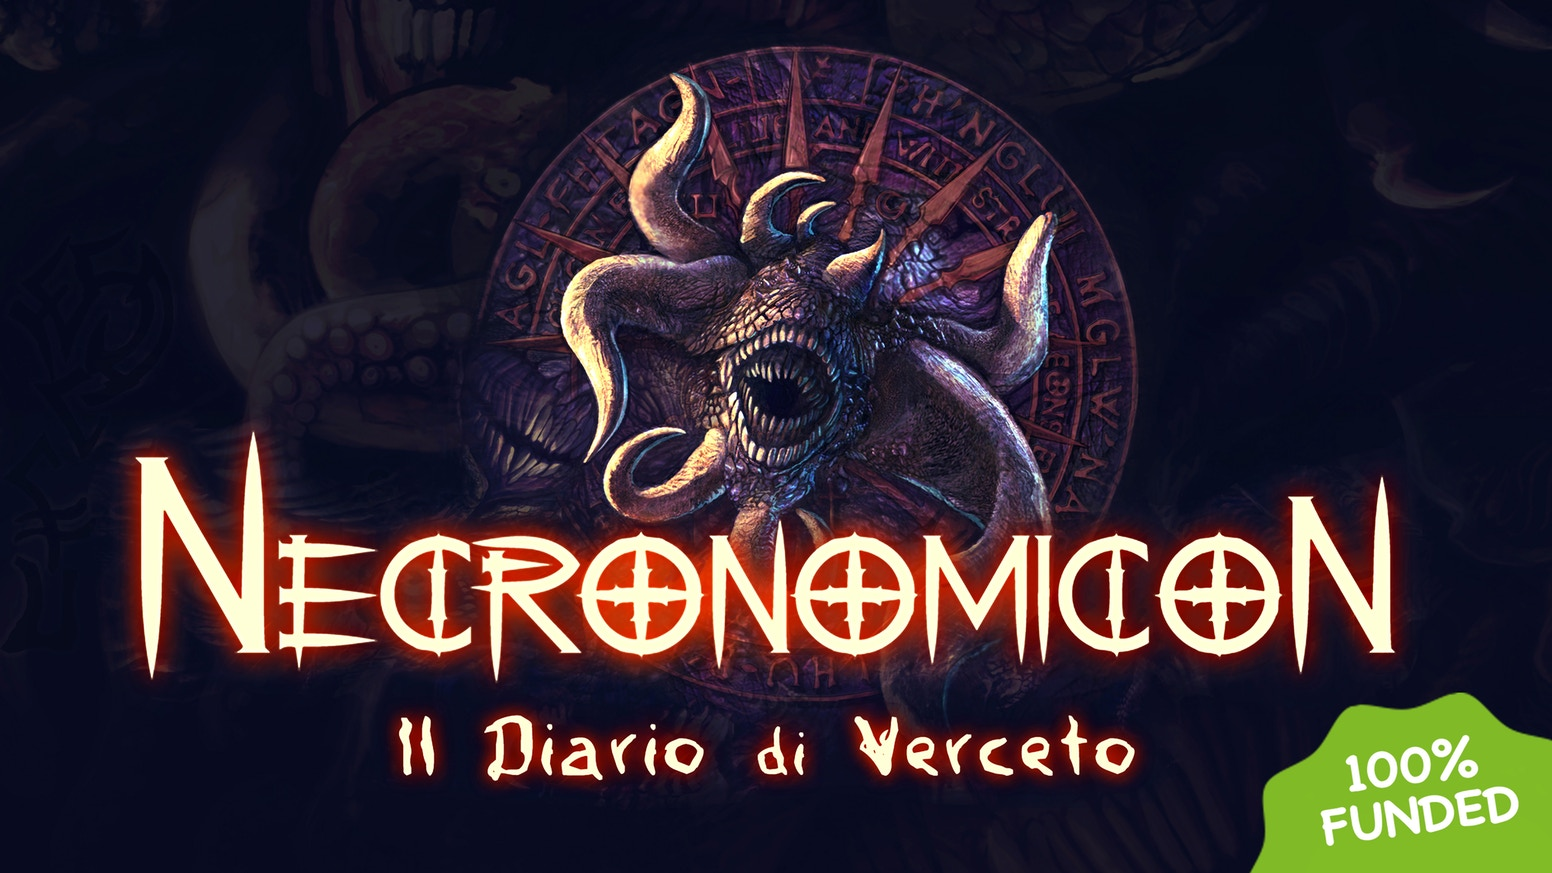 Necronomicon - The Verceto's Diary by Walter Brocca